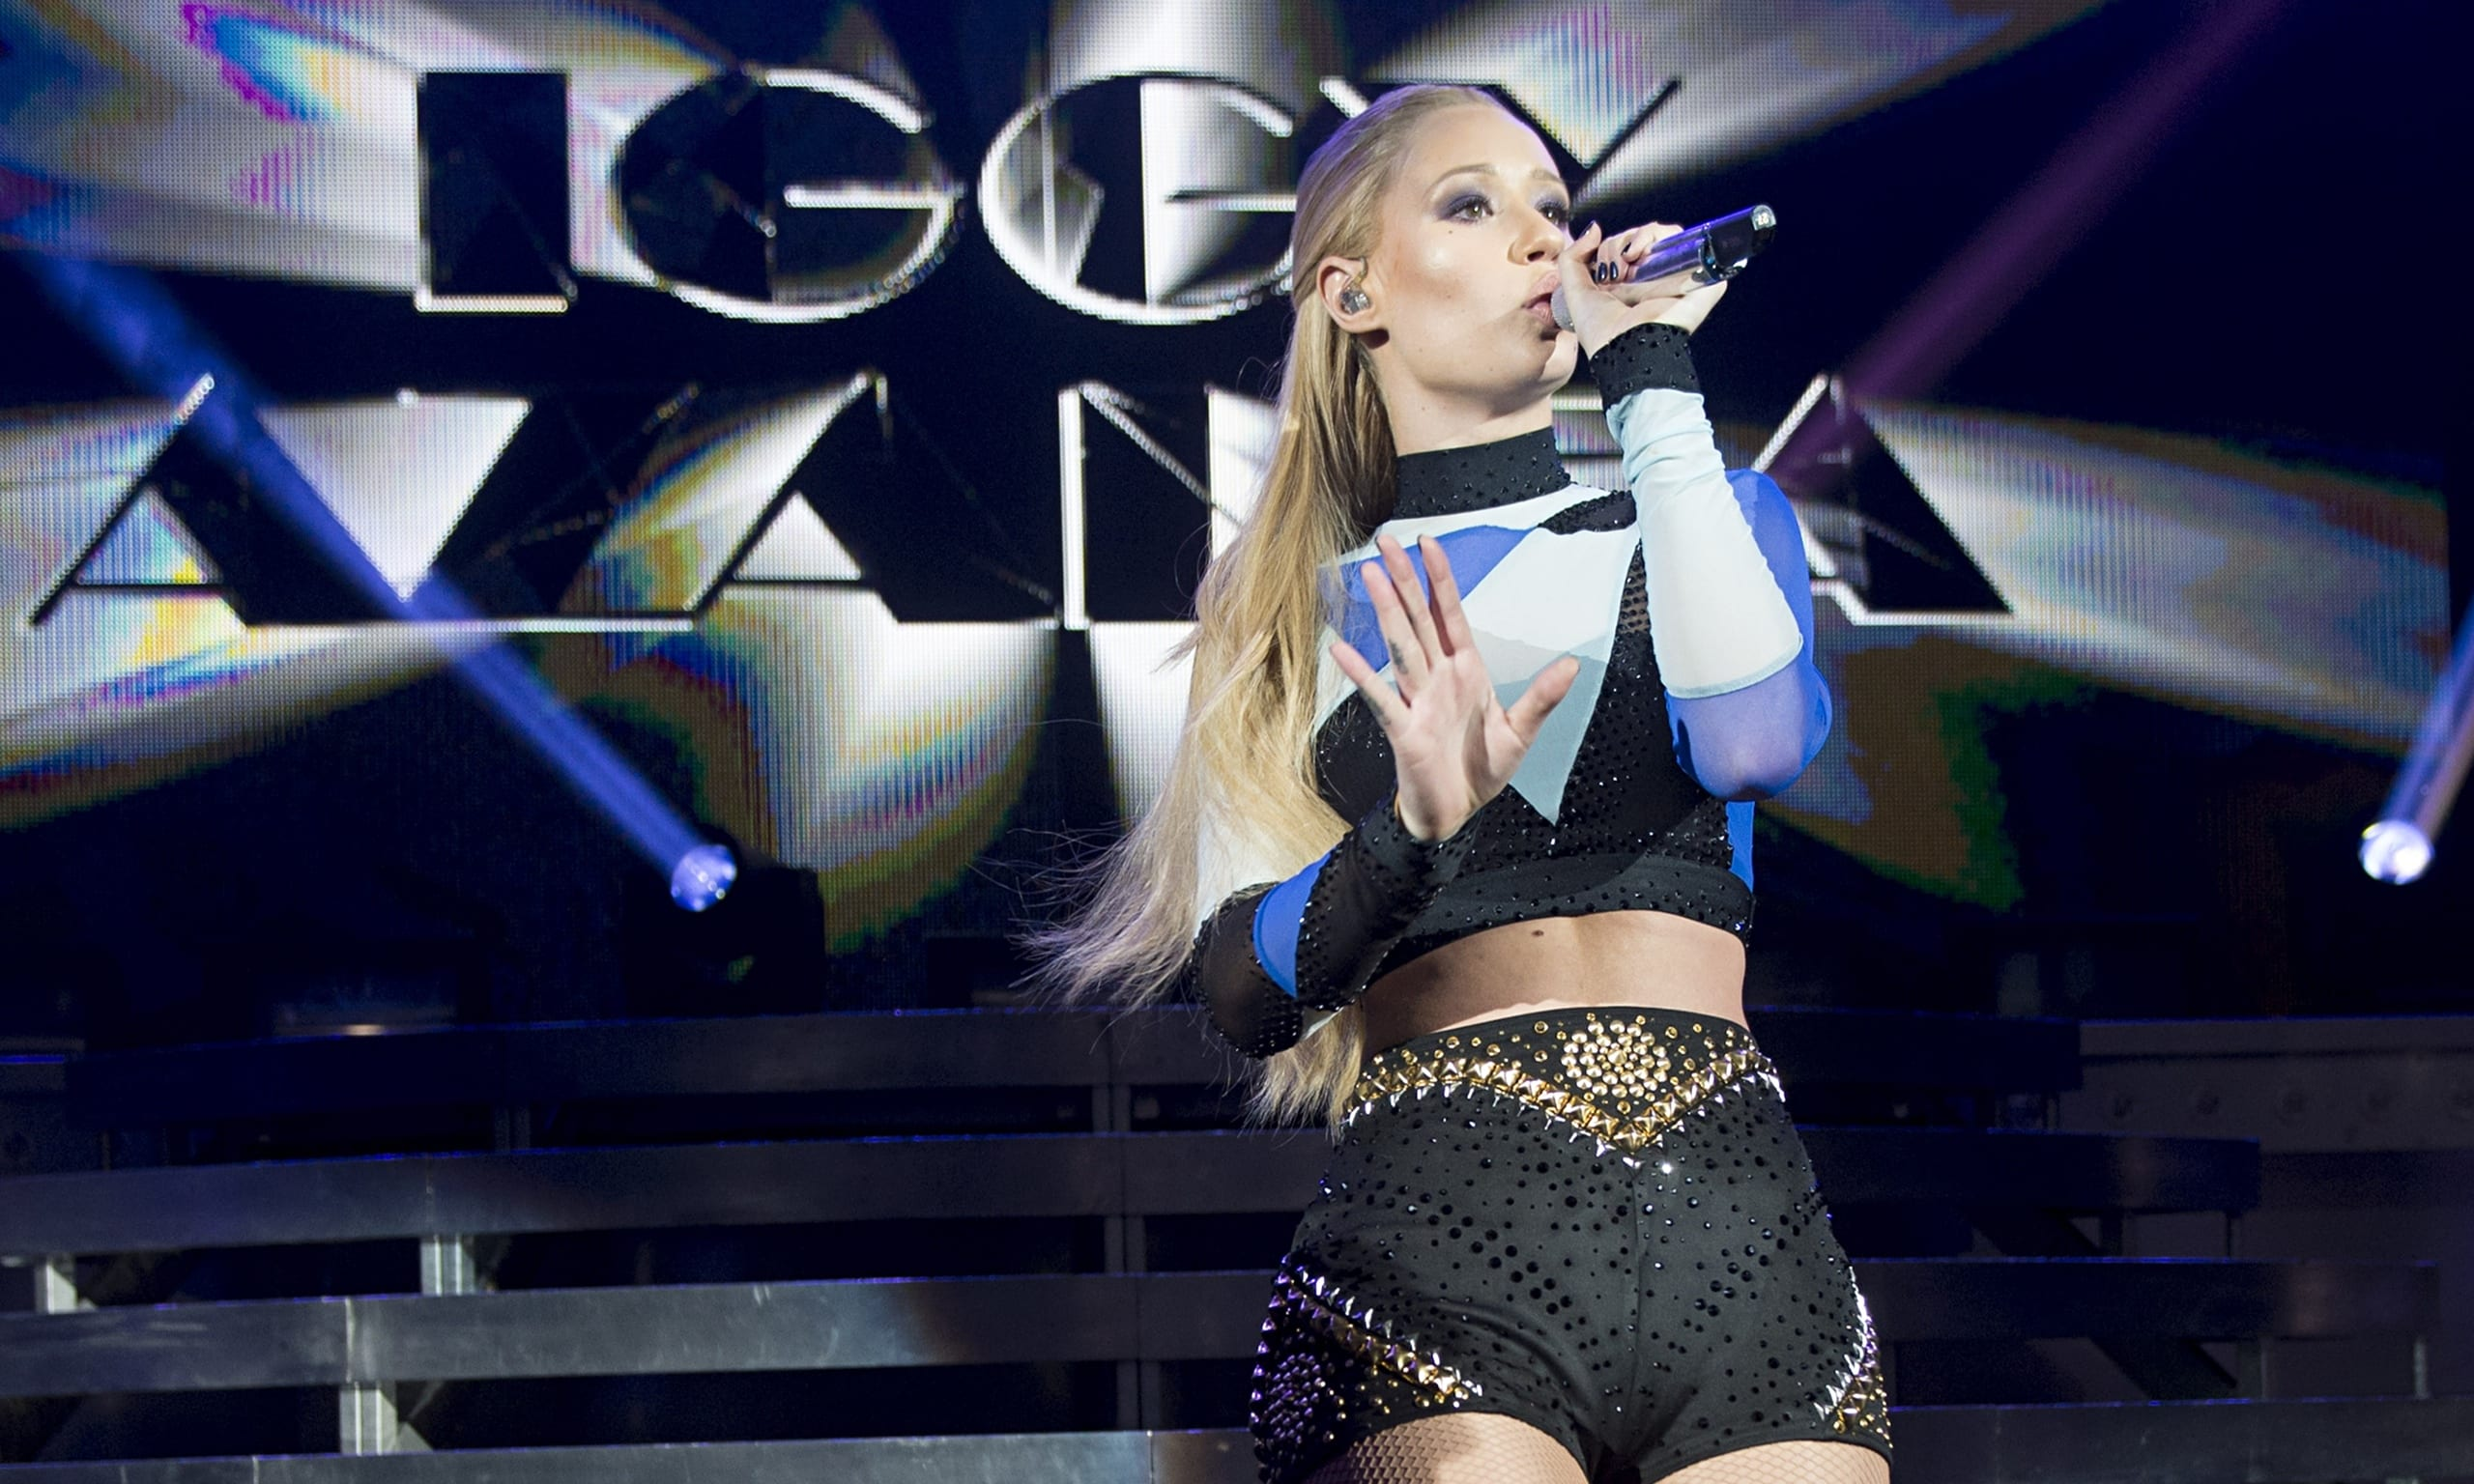 Iggy Azalea had the crowd 'erupting for every song' at her one-off London show last week. - sexy Iggy Azalea Iggy Azalea sexy Iggy Azalea Resimleri Iggy Azalea güzel resimler